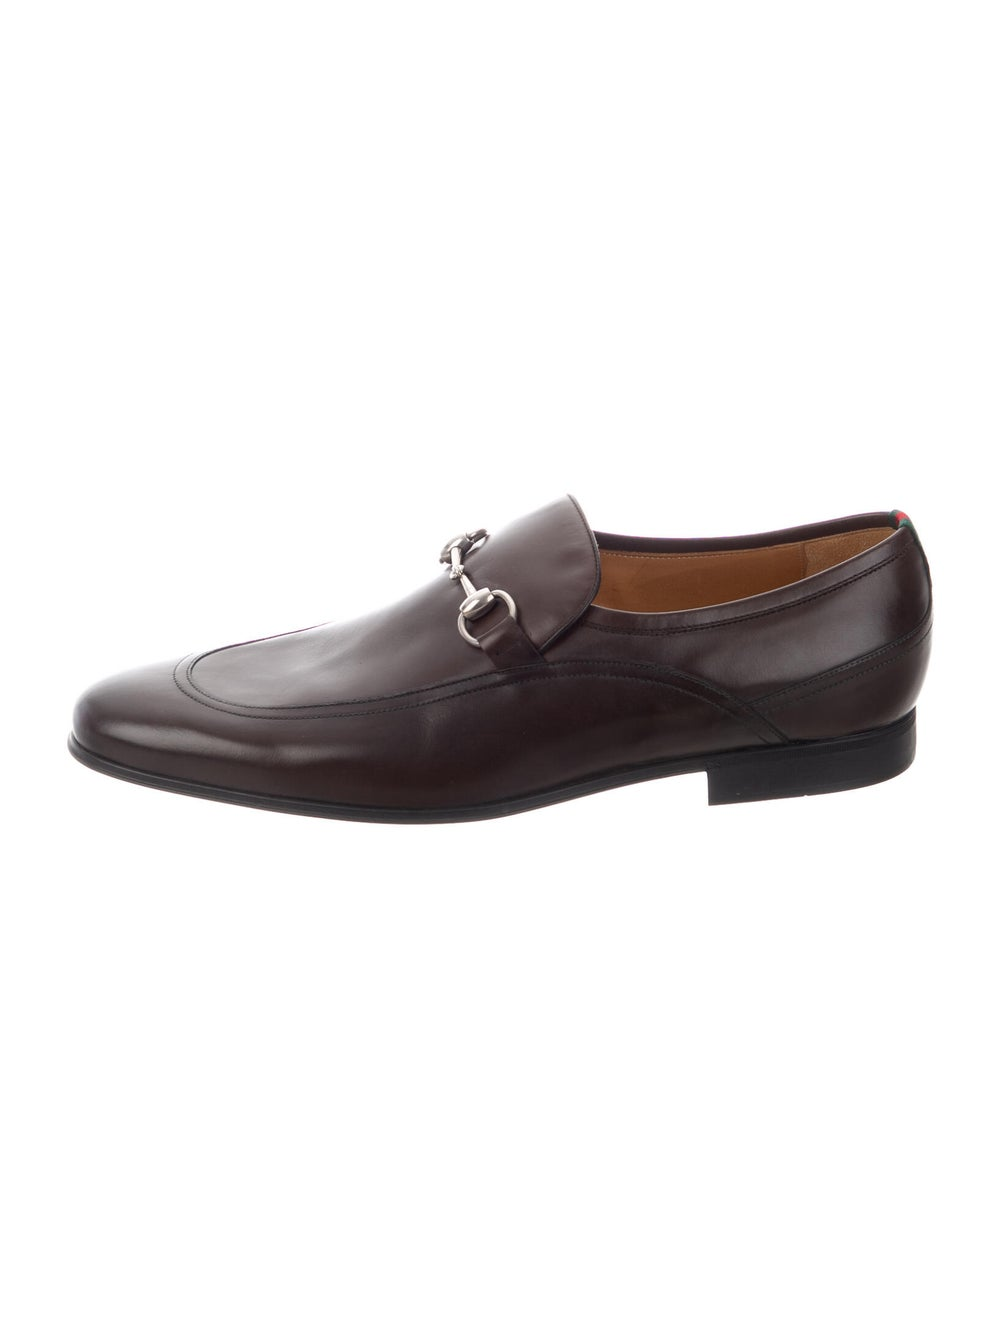 Gucci Horsebit Accent Leather Dress Loafers Brown - image 1